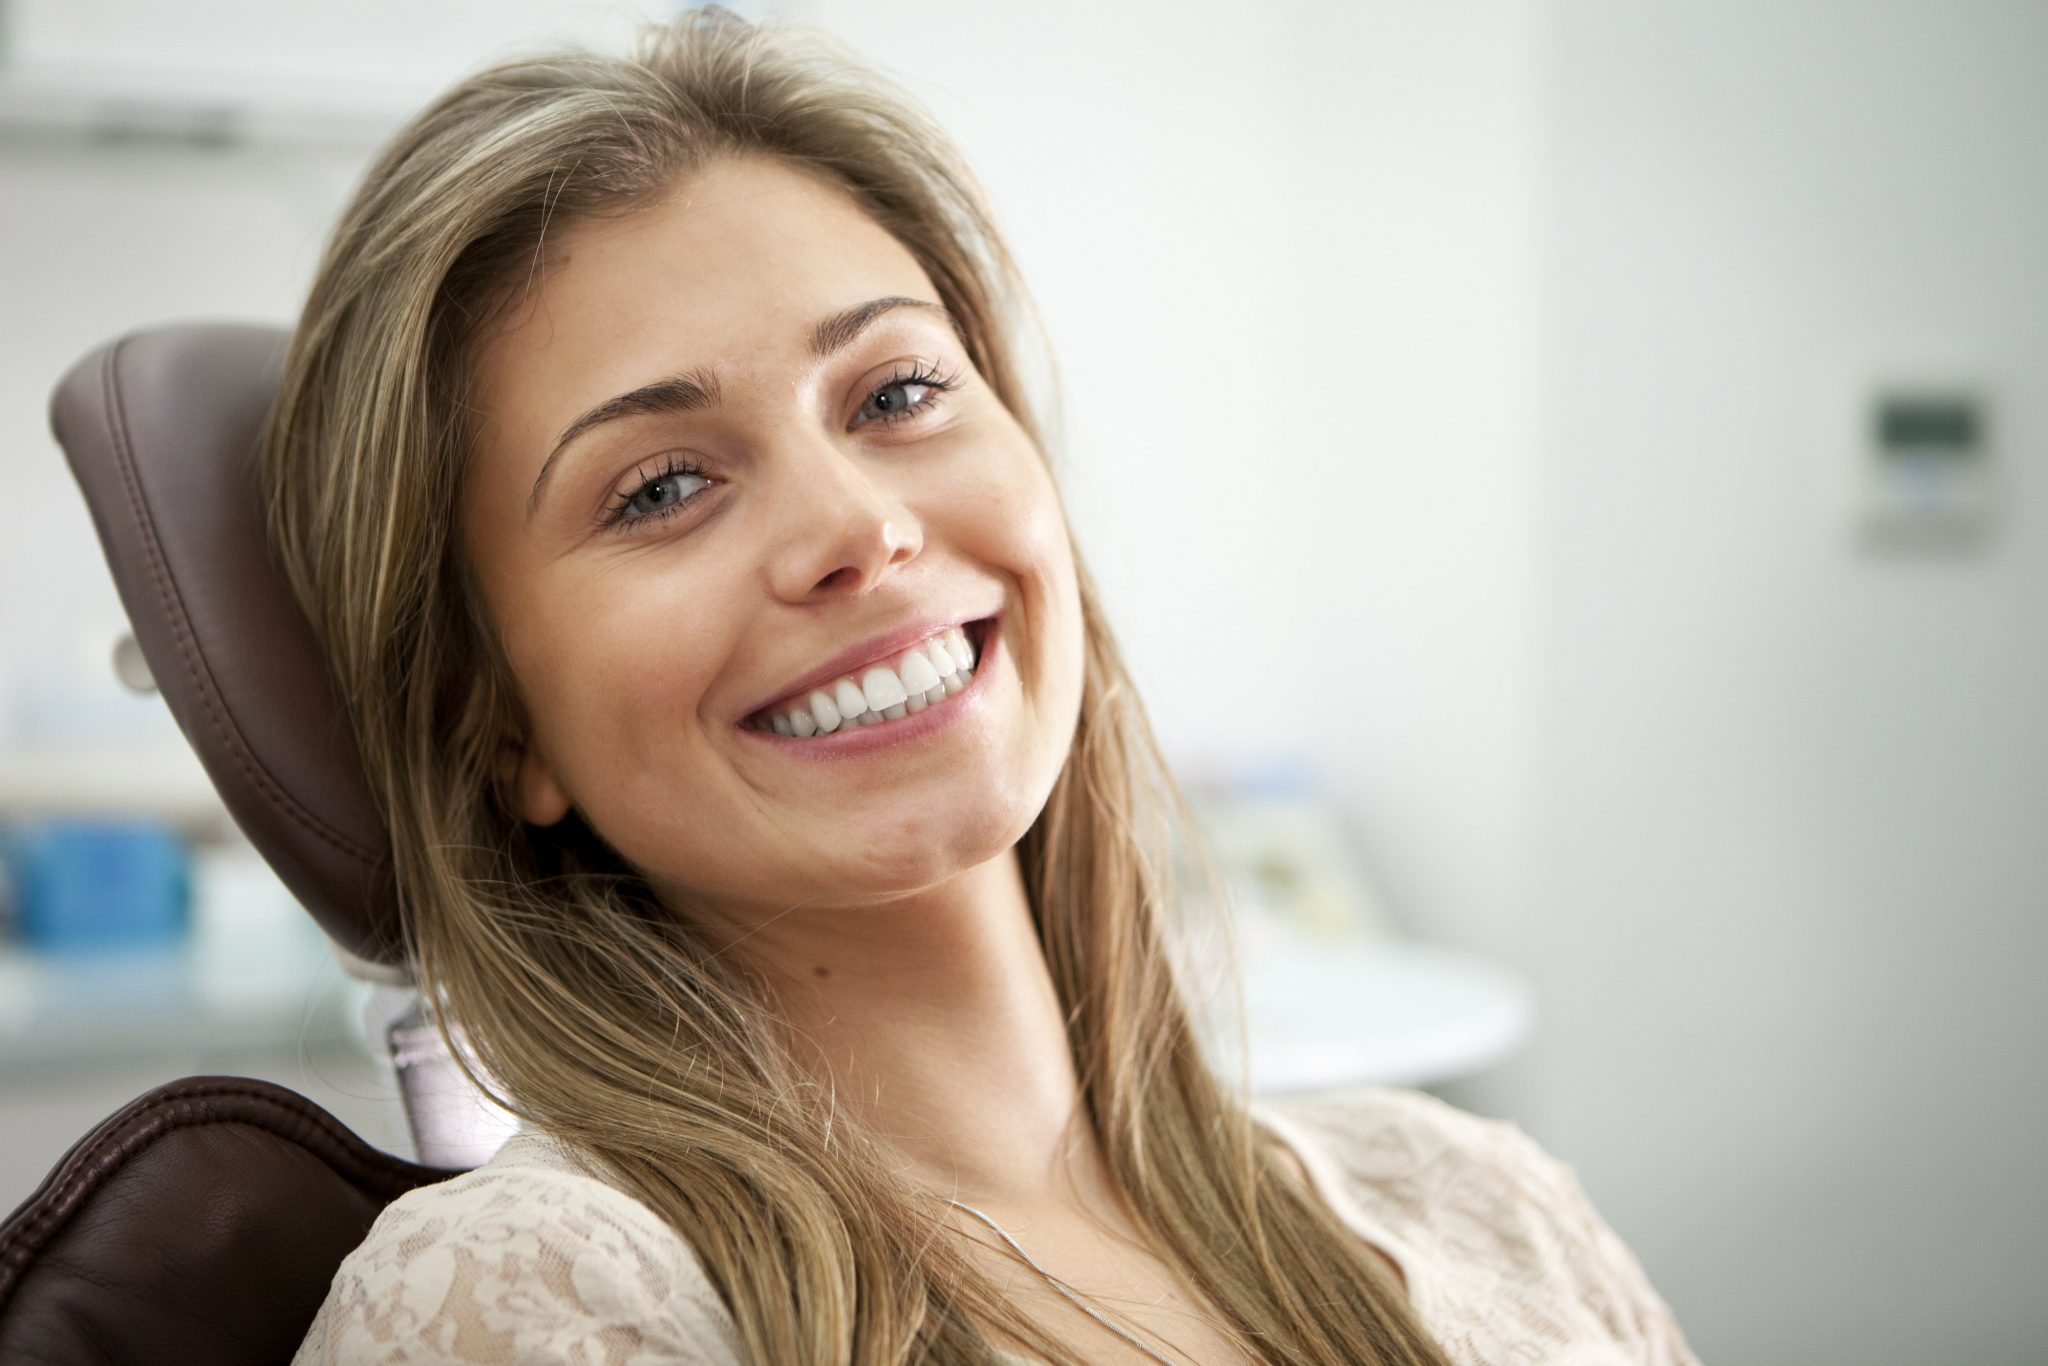 woman-smiling-while-sitting-with-head-laid-back-on-dentist-chair